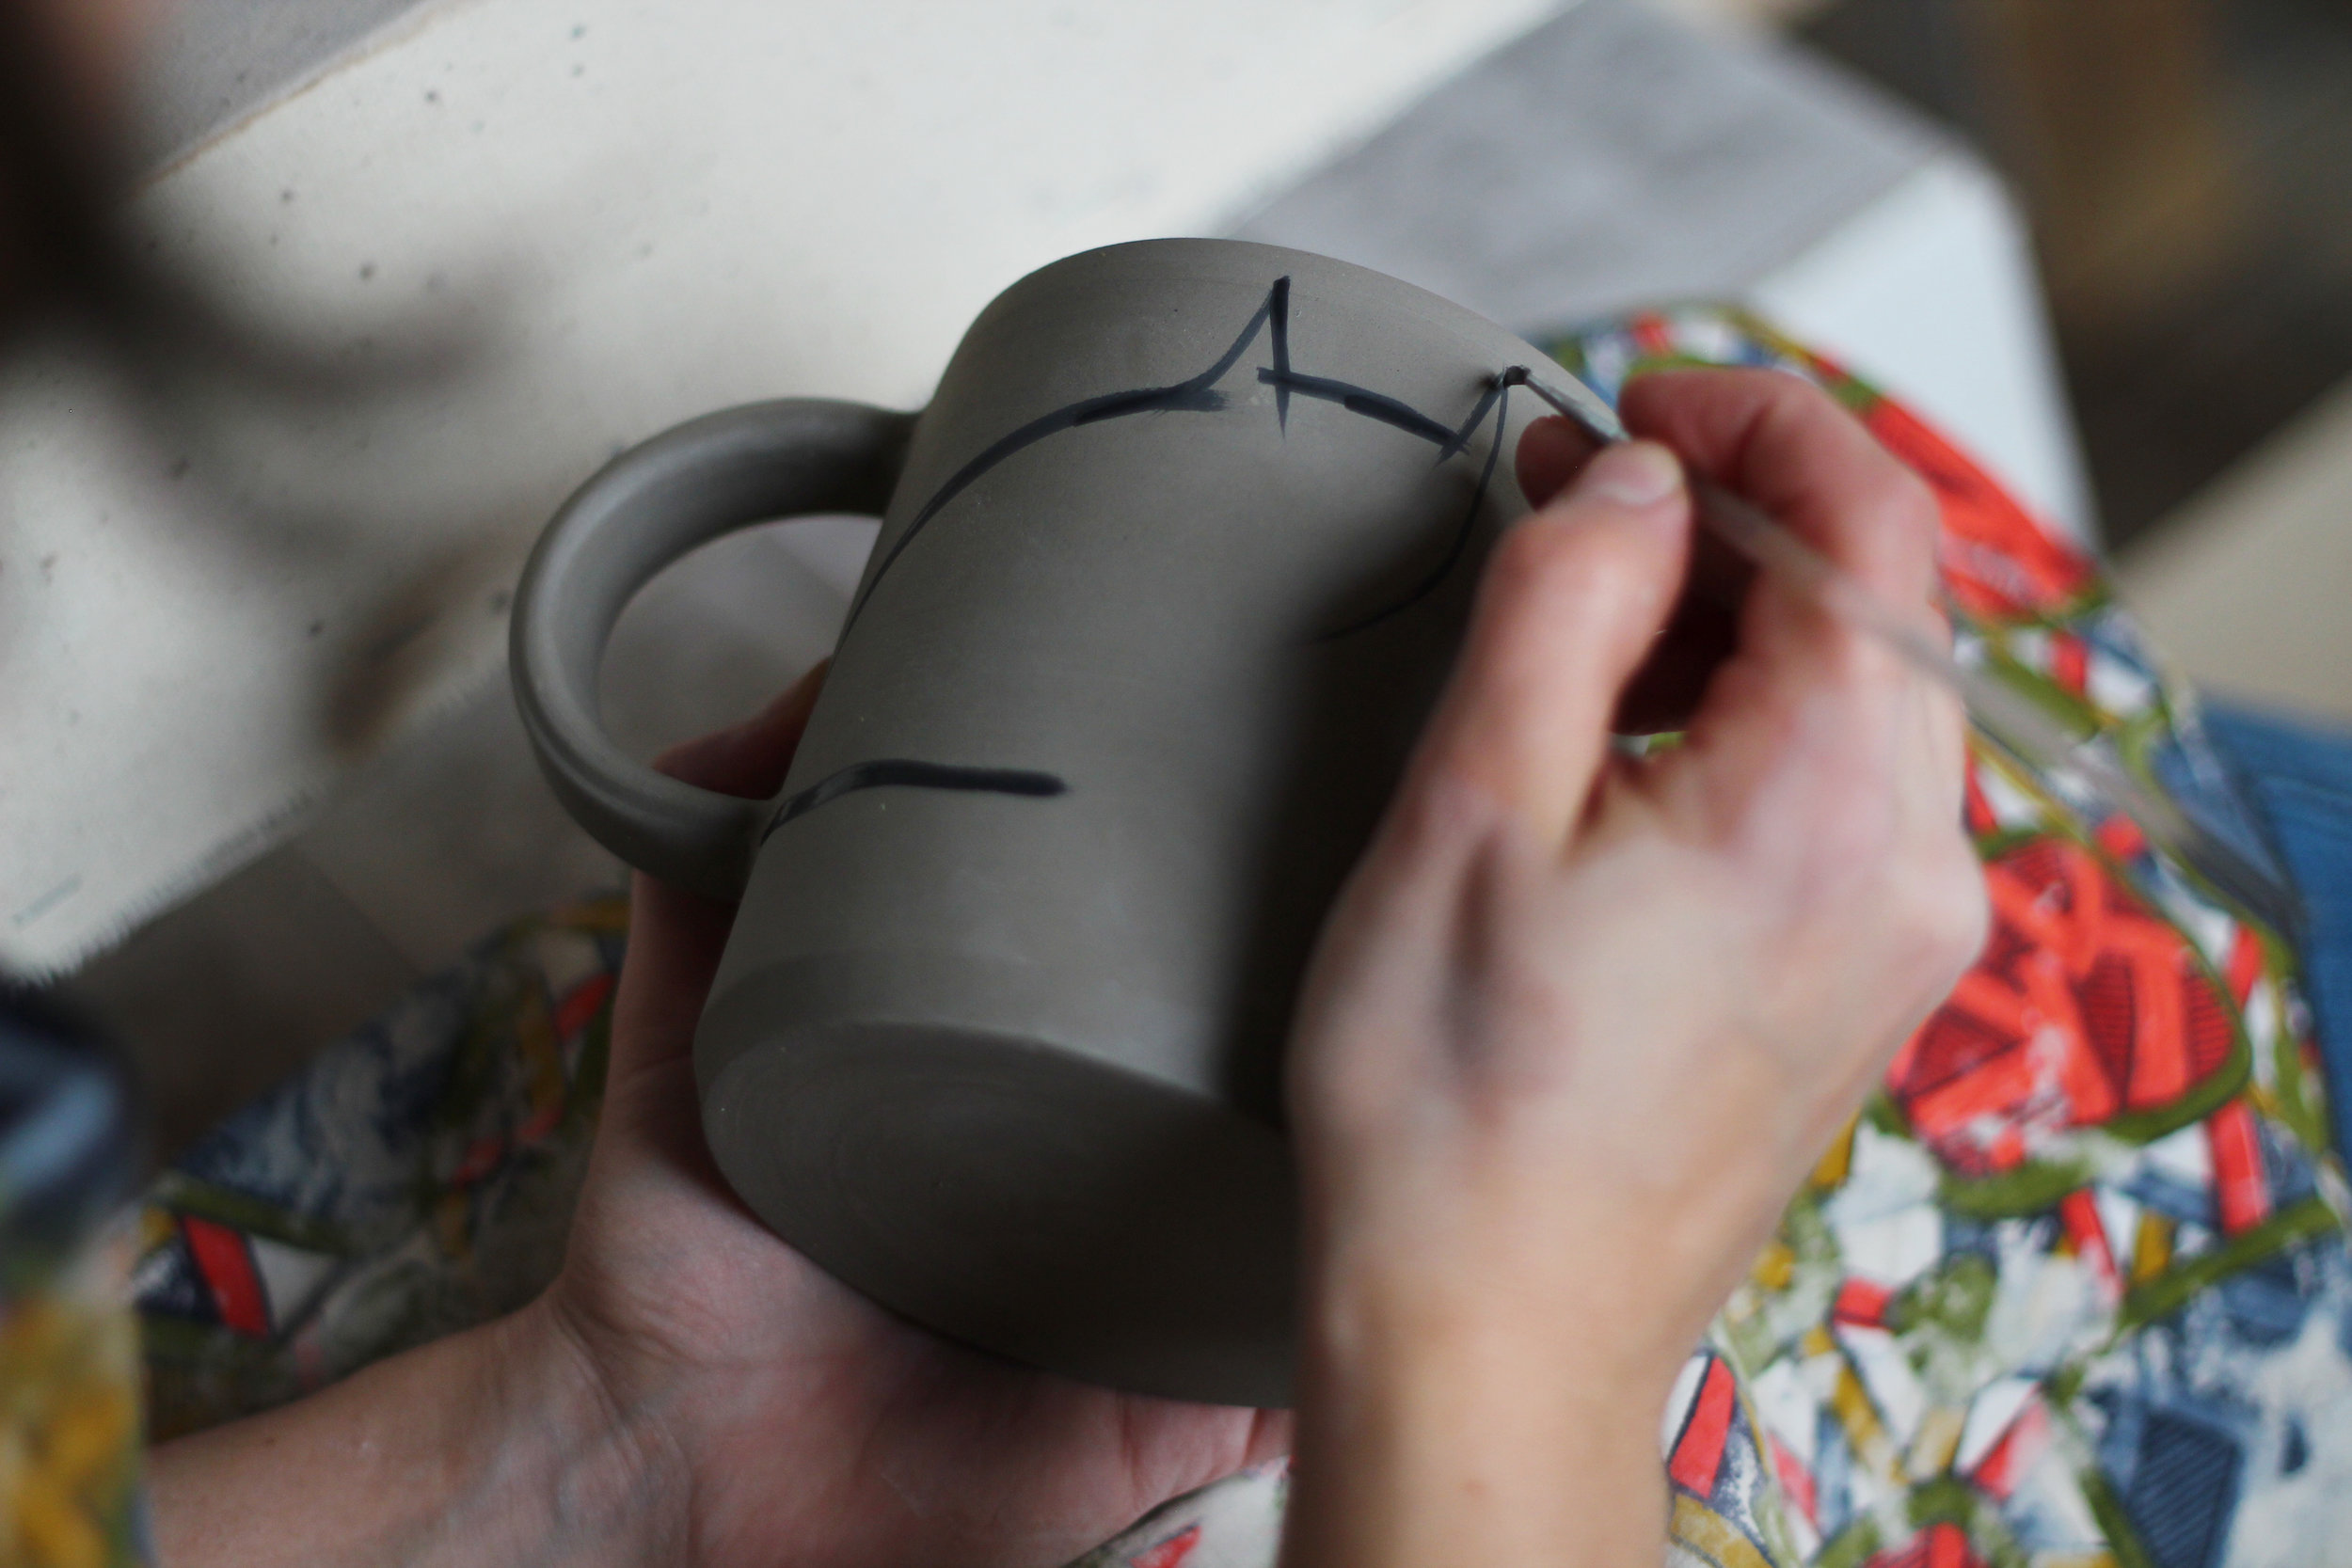 Some pieces, like our cat mug with the tail on the handle, are completely painted by hand, so each one is completely unique and has its own personality! Other pieces have hand-painted details in addition to the engobe dip. These details, like faces and outlines, are hand-painted on with a tiny paintbrush.